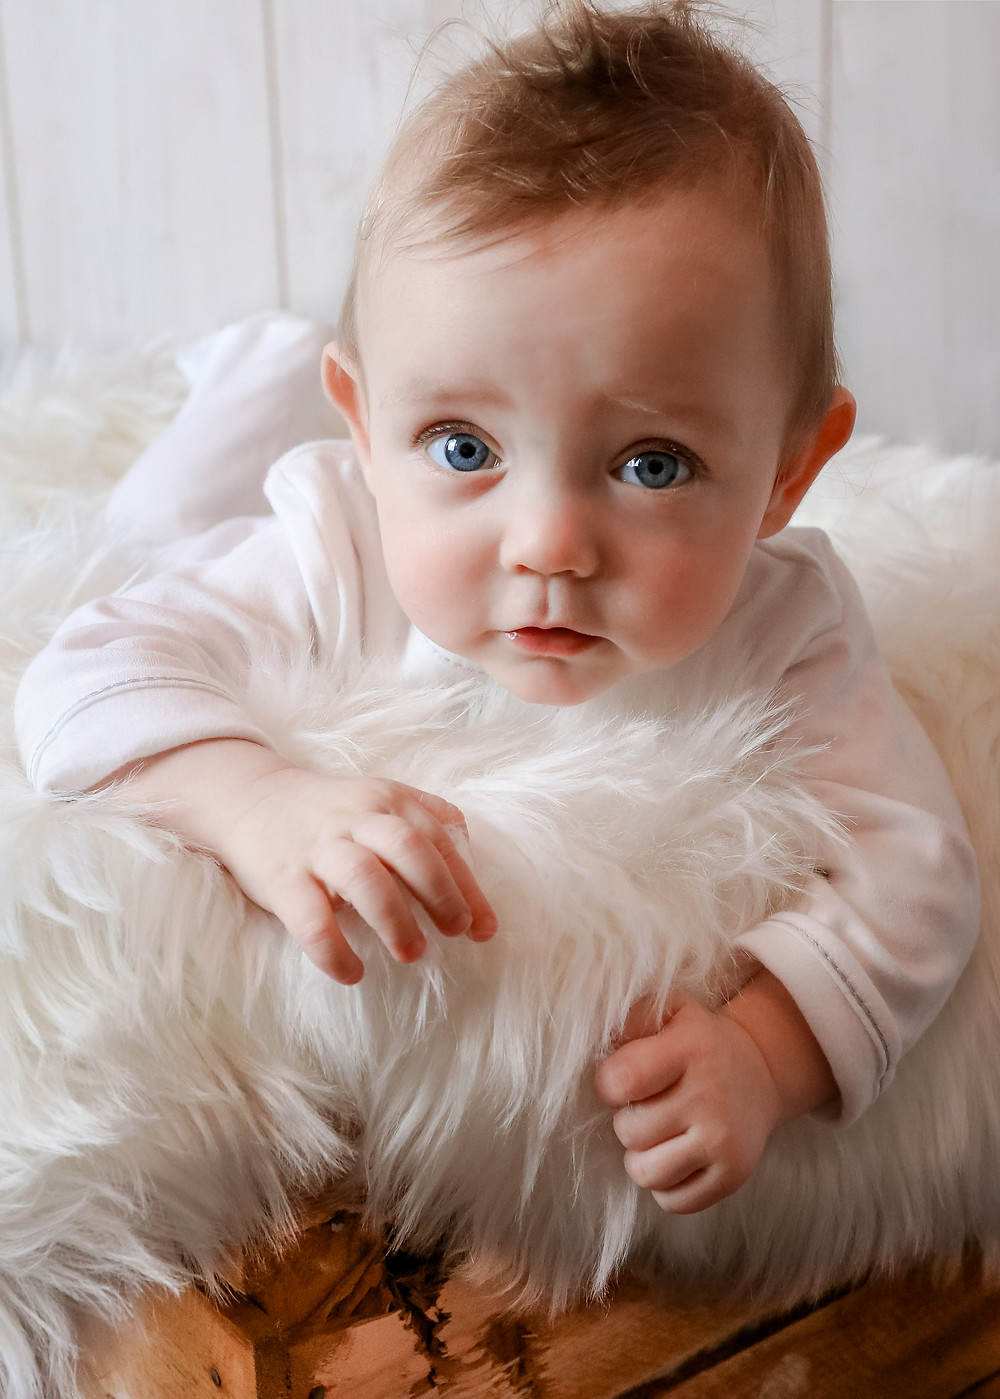 gorgeous baby with the biggest blue eyes and cute face, lying in a wooden crate stuffed with a white fluffy blanket